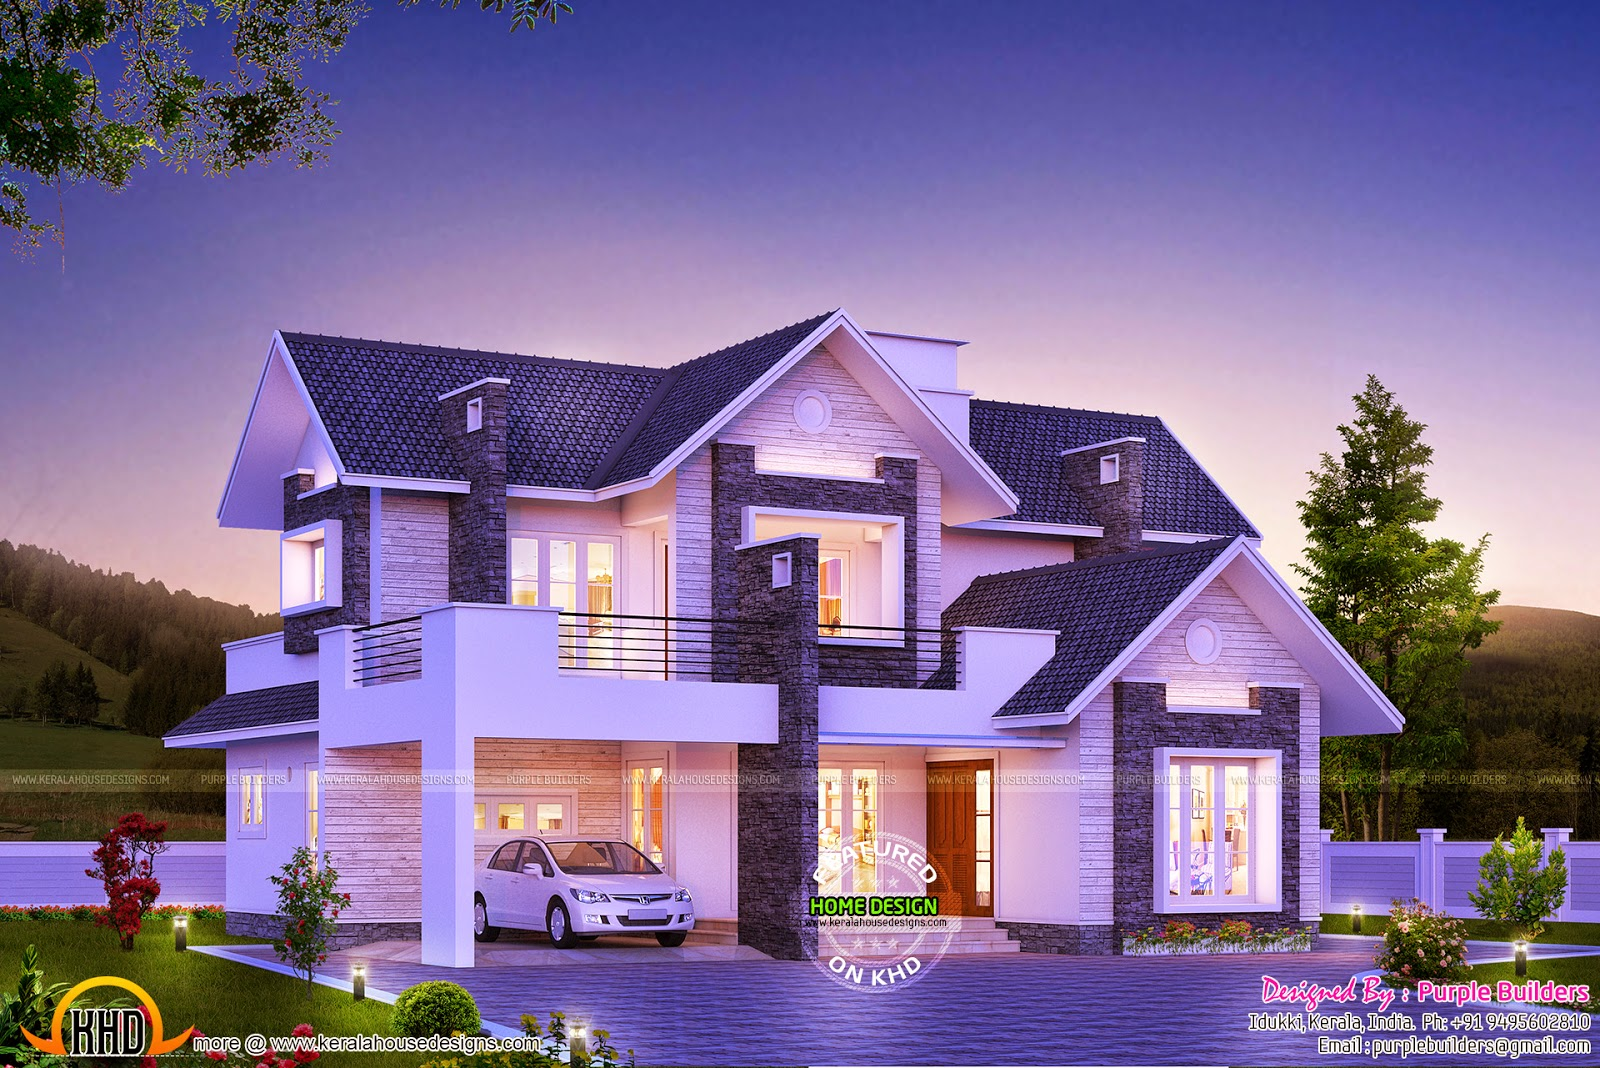 Super dream home kerala home design and floor plans for Dream home kerala